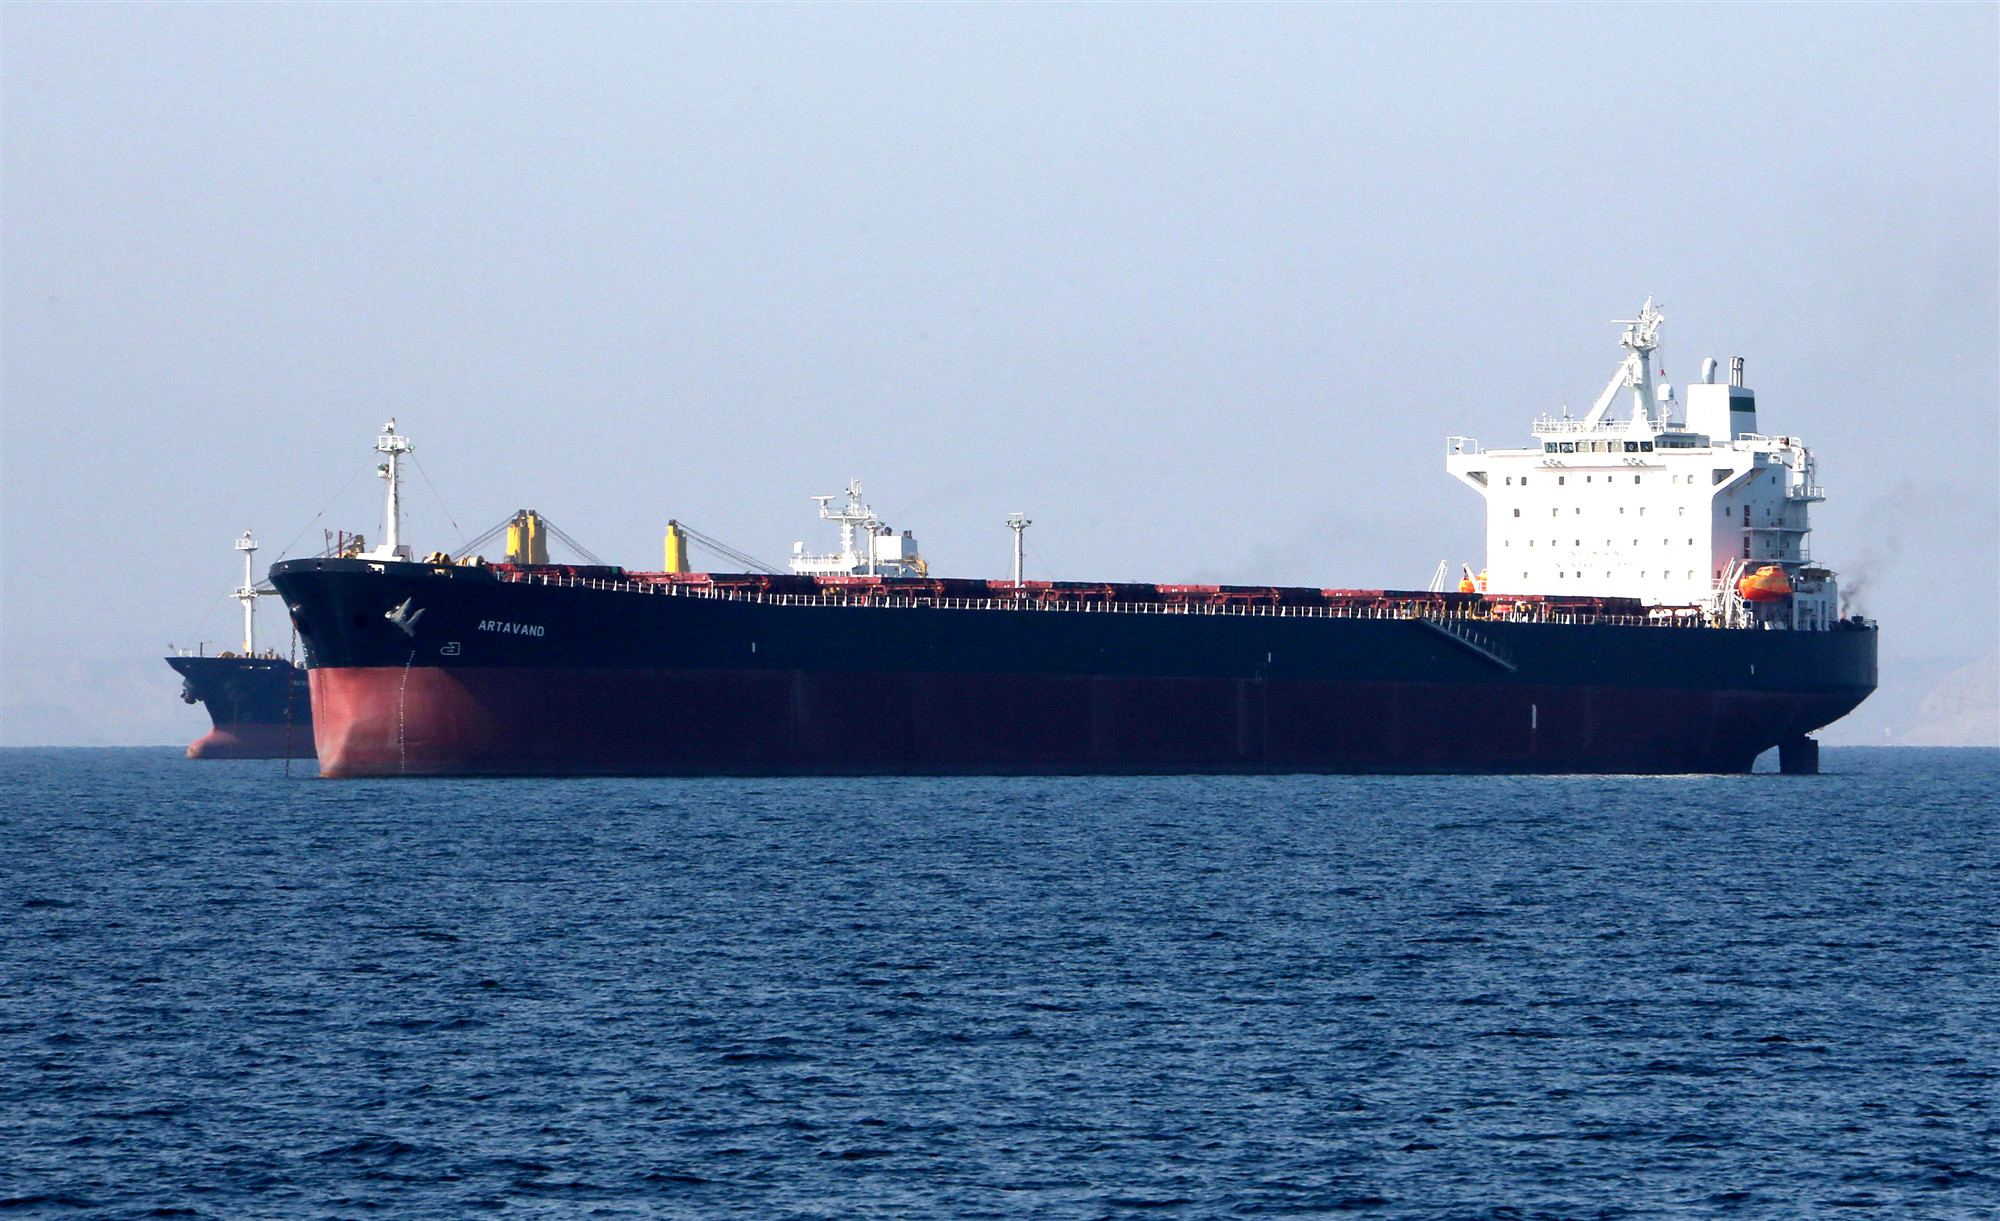 Britain says to seek diplomatic way but warns of consequences after Iran's tanker seizure